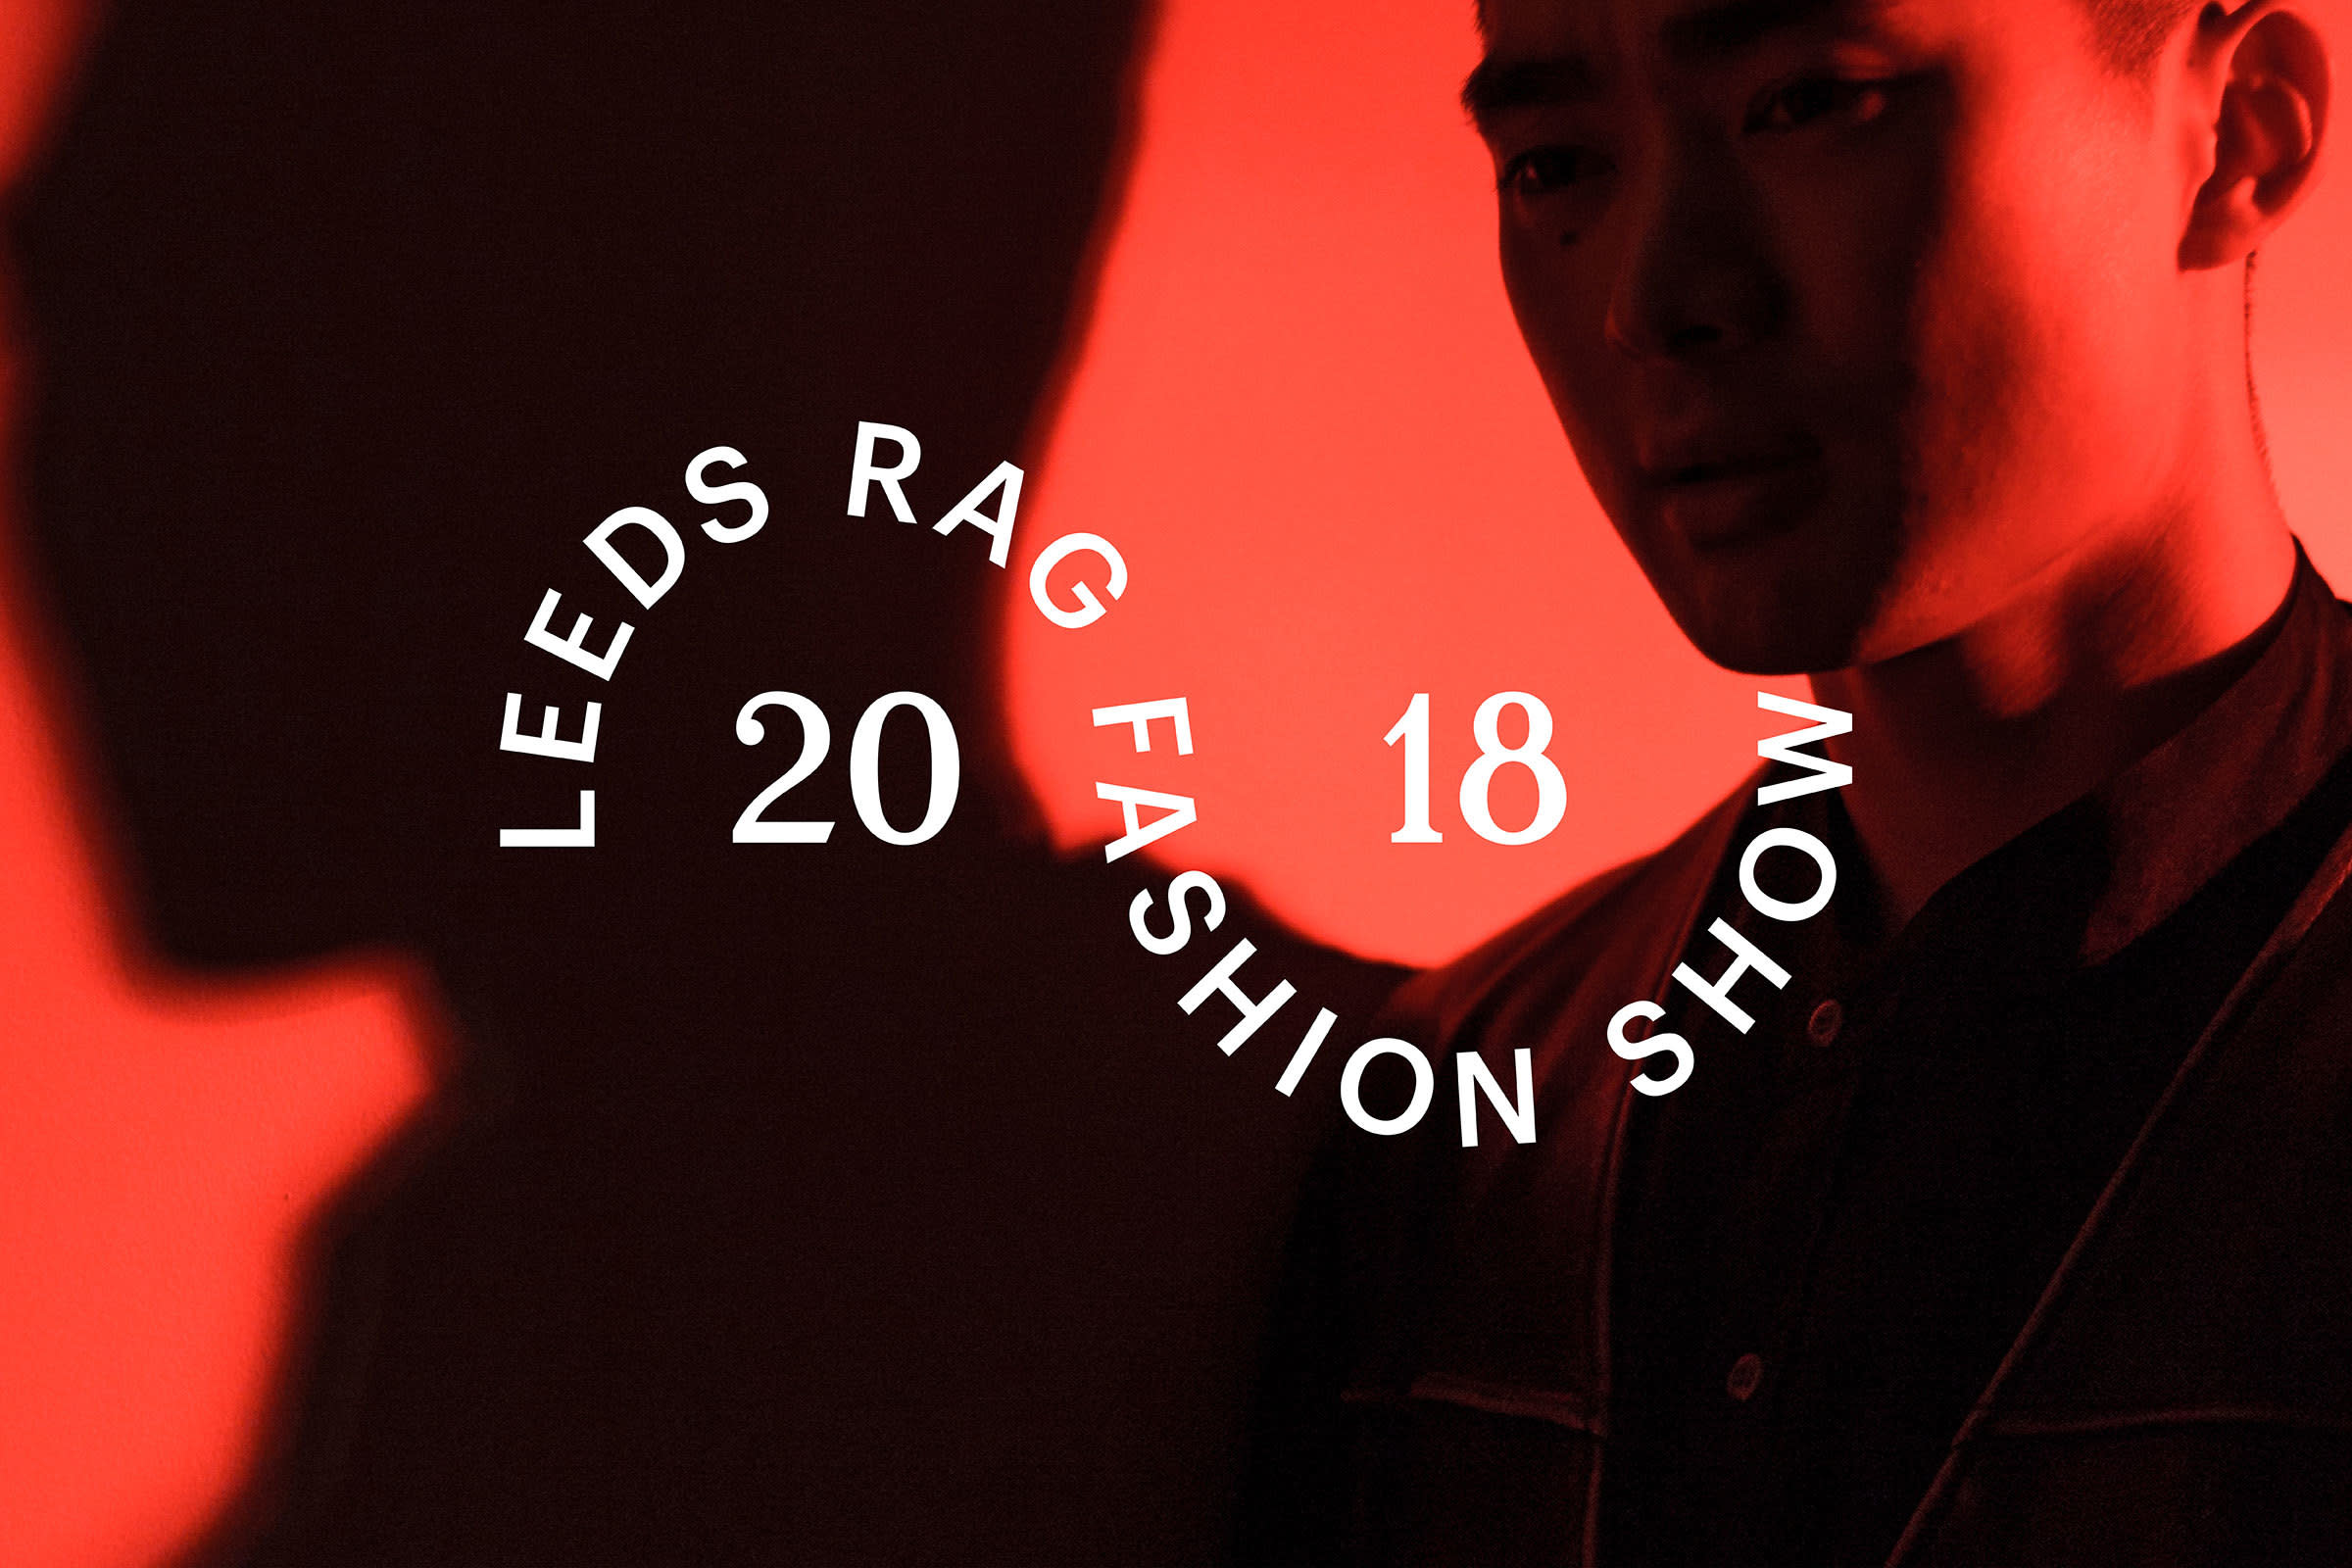 saul studio — Leeds RAG Fashion Show 2018